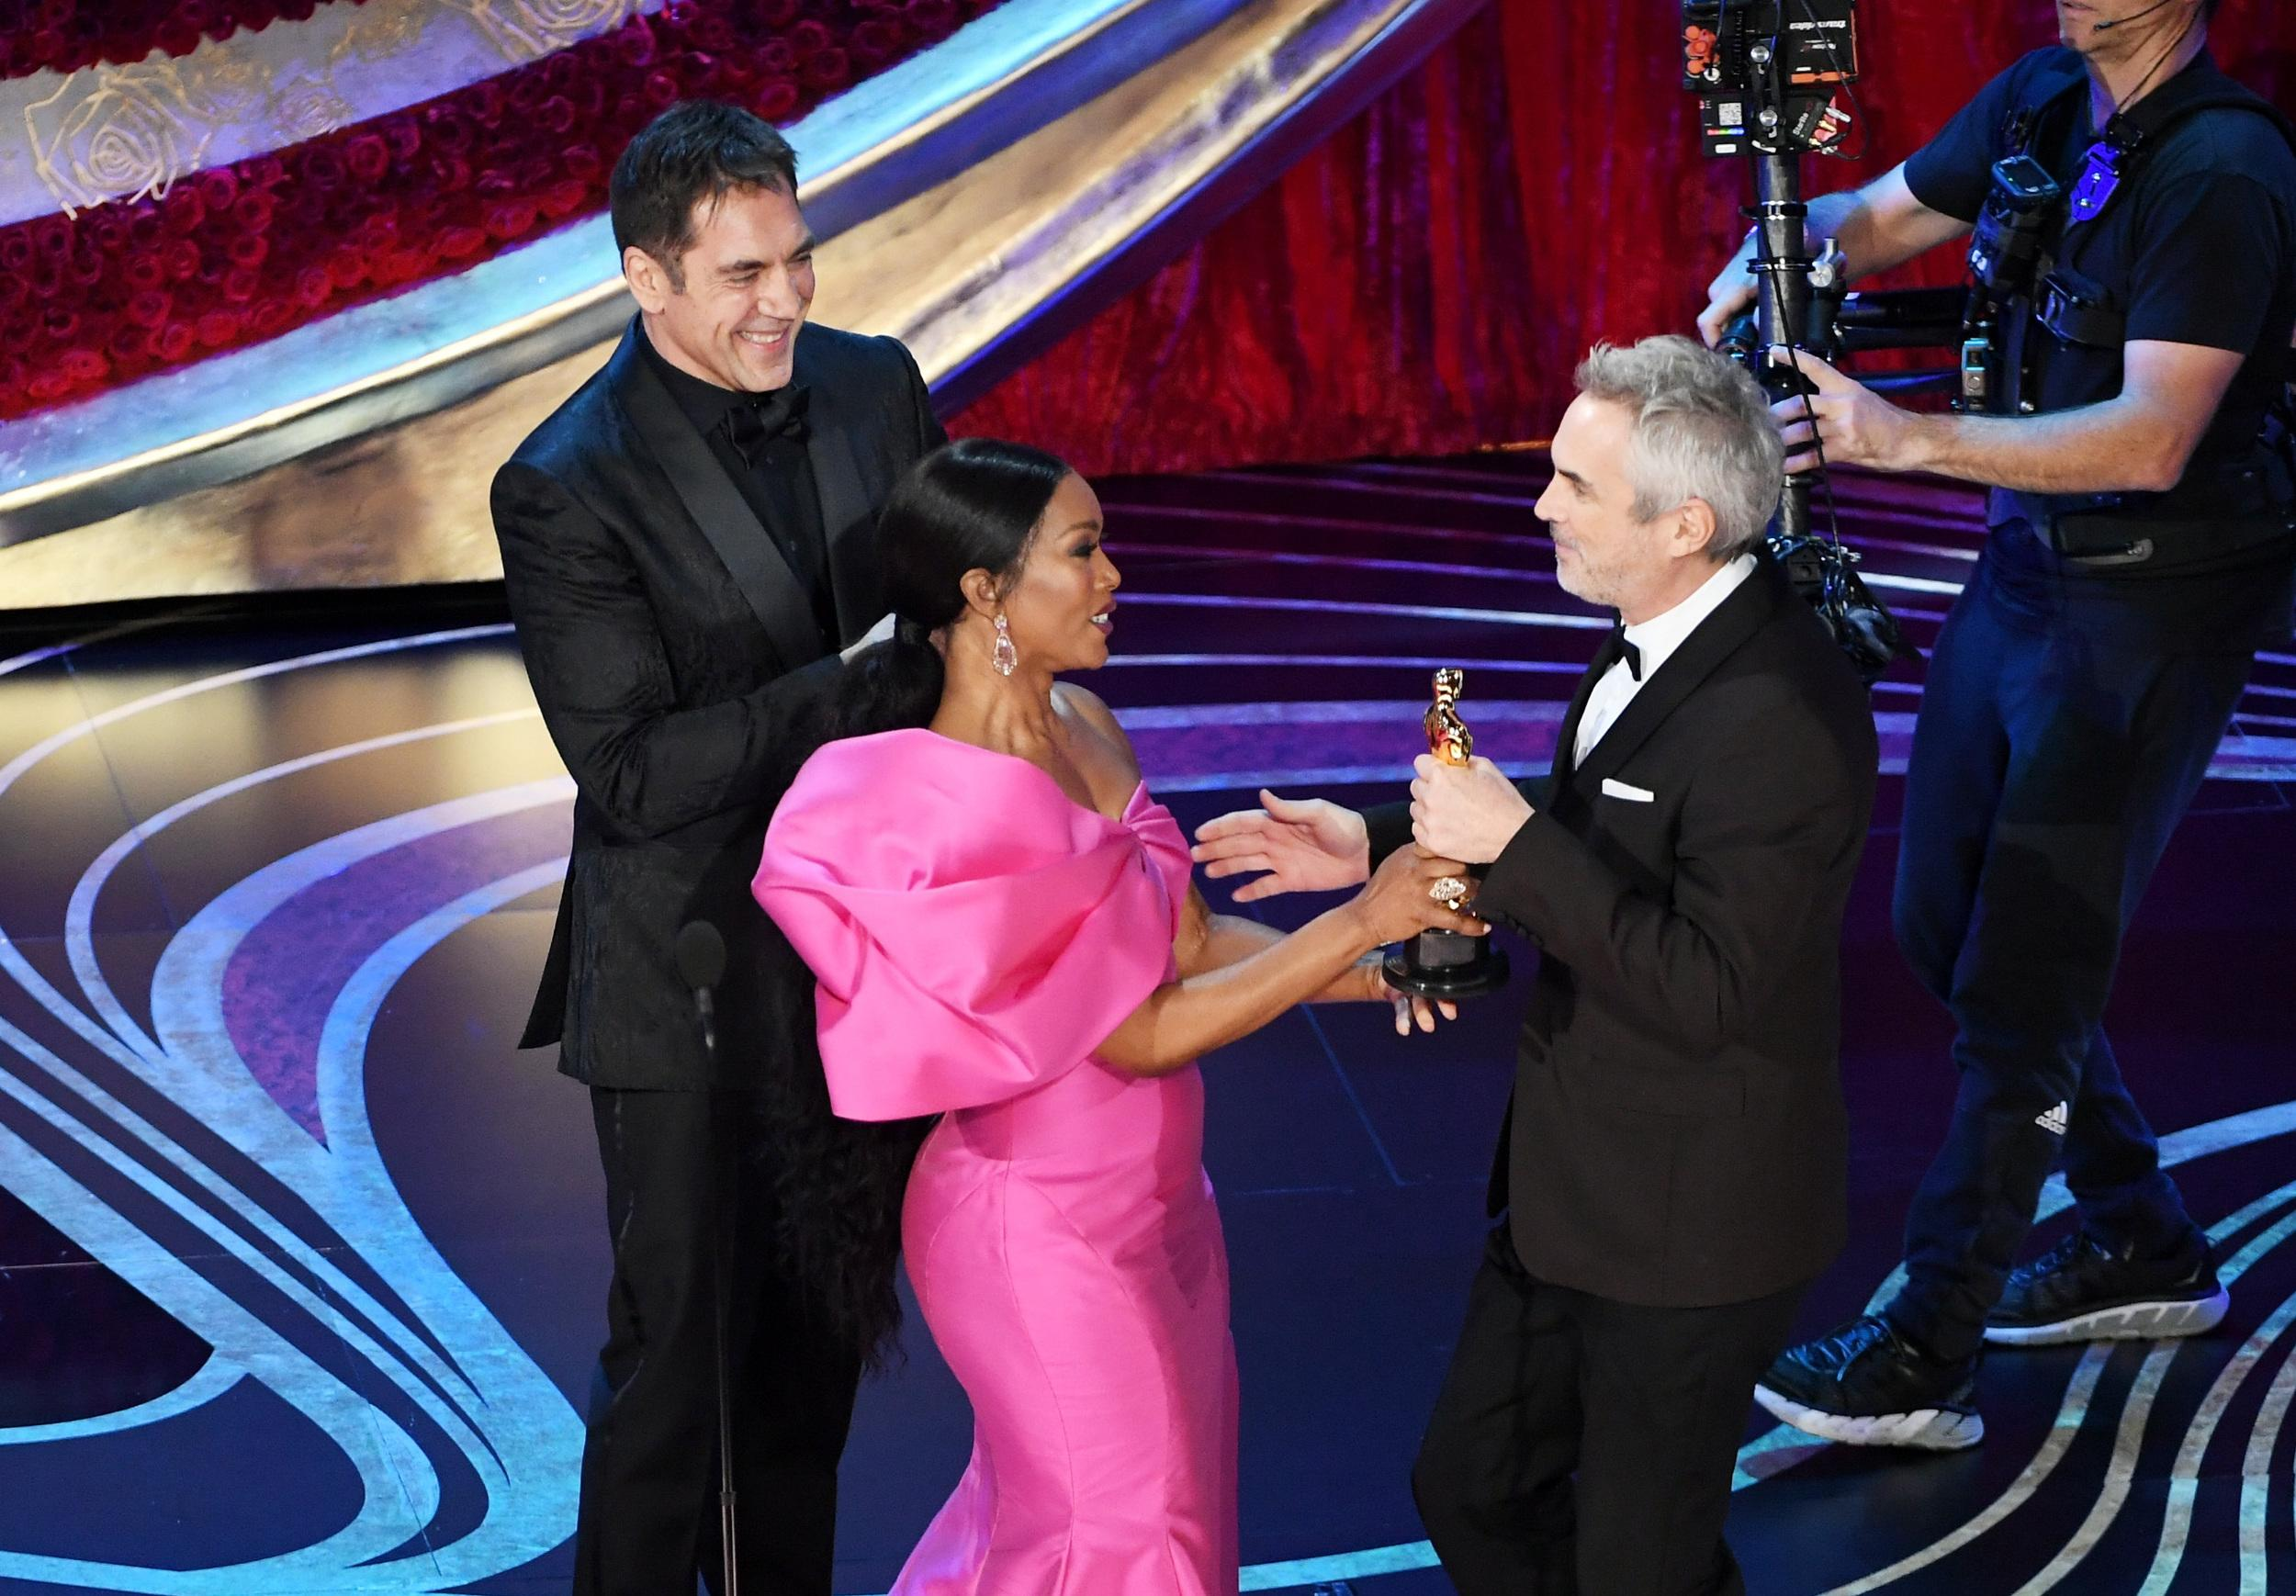 HOLLYWOOD, CALIFORNIA - FEBRUARY 24: (L-R) Javier Bardem and Angela Bassett present the Foreign Language Film award for 'Roma' to Alfonso Cuaron onstage during the 91st Annual Academy Awards at Dolby Theatre on February 24, 2019 in Hollywood, California. (Photo by Kevin Winter/Getty Images)